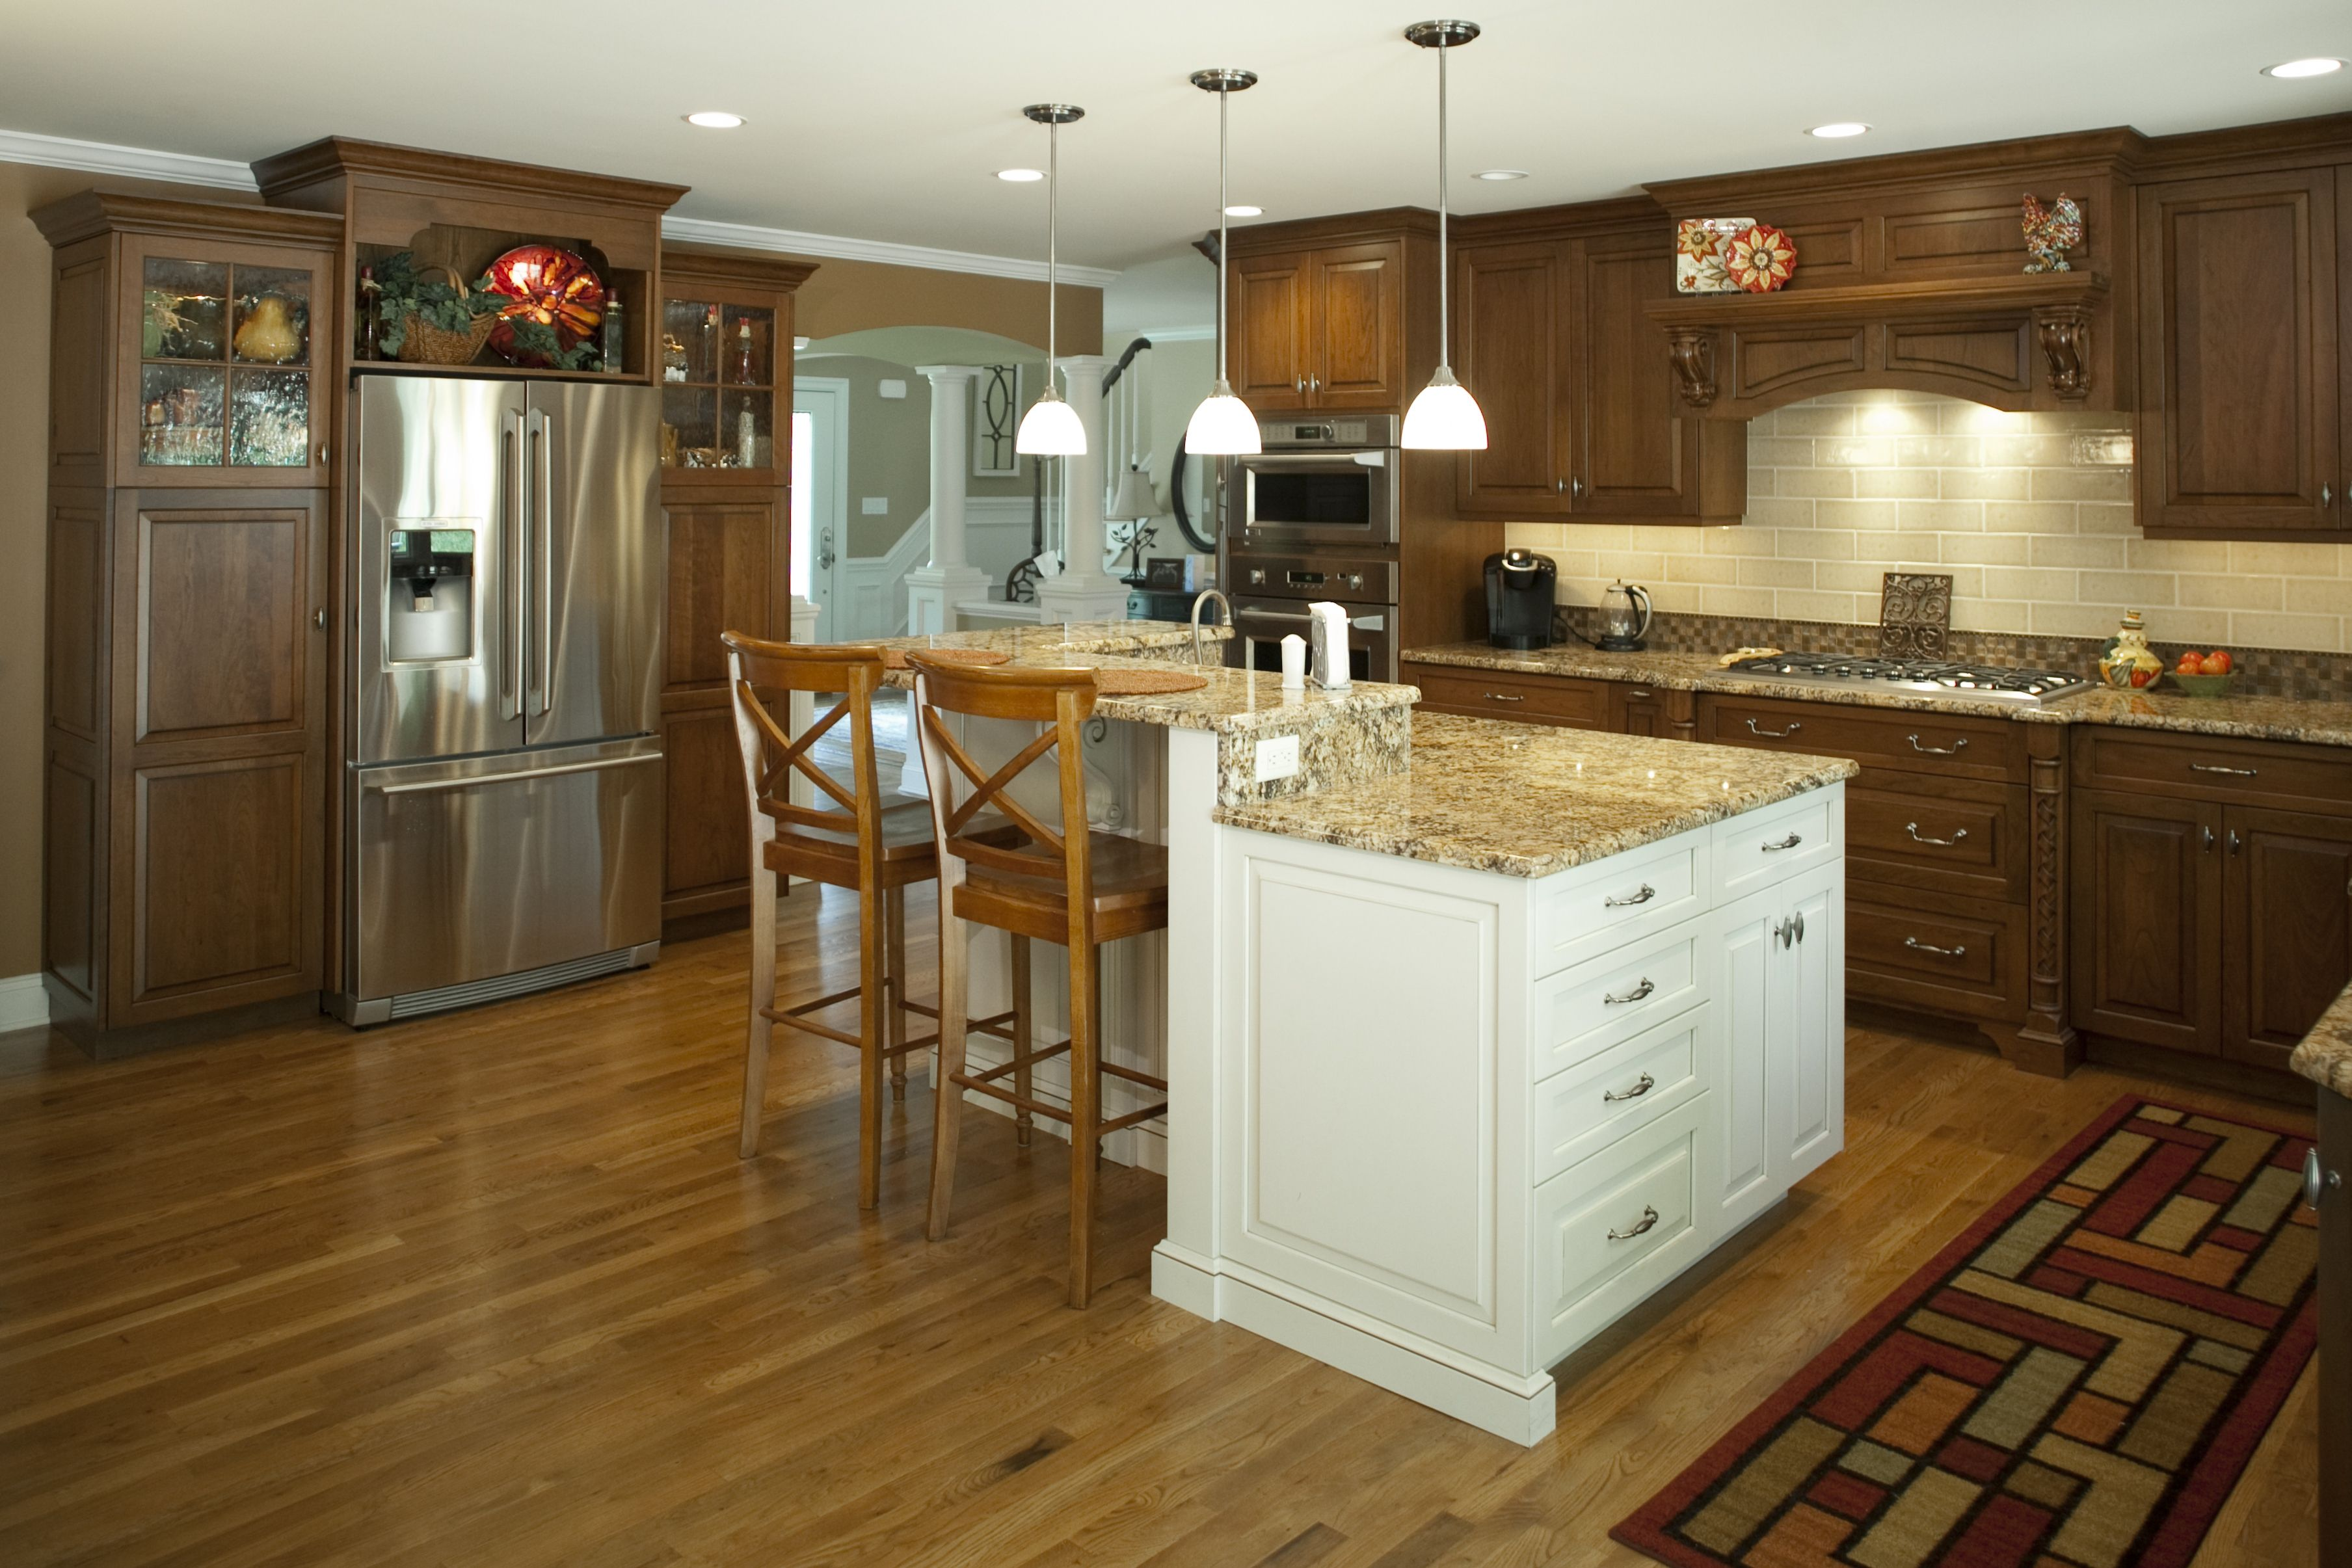 Kitchen Cabinet Hardware Showroom  Httpbetdaffaires Inspiration Design Line Kitchens Design Ideas